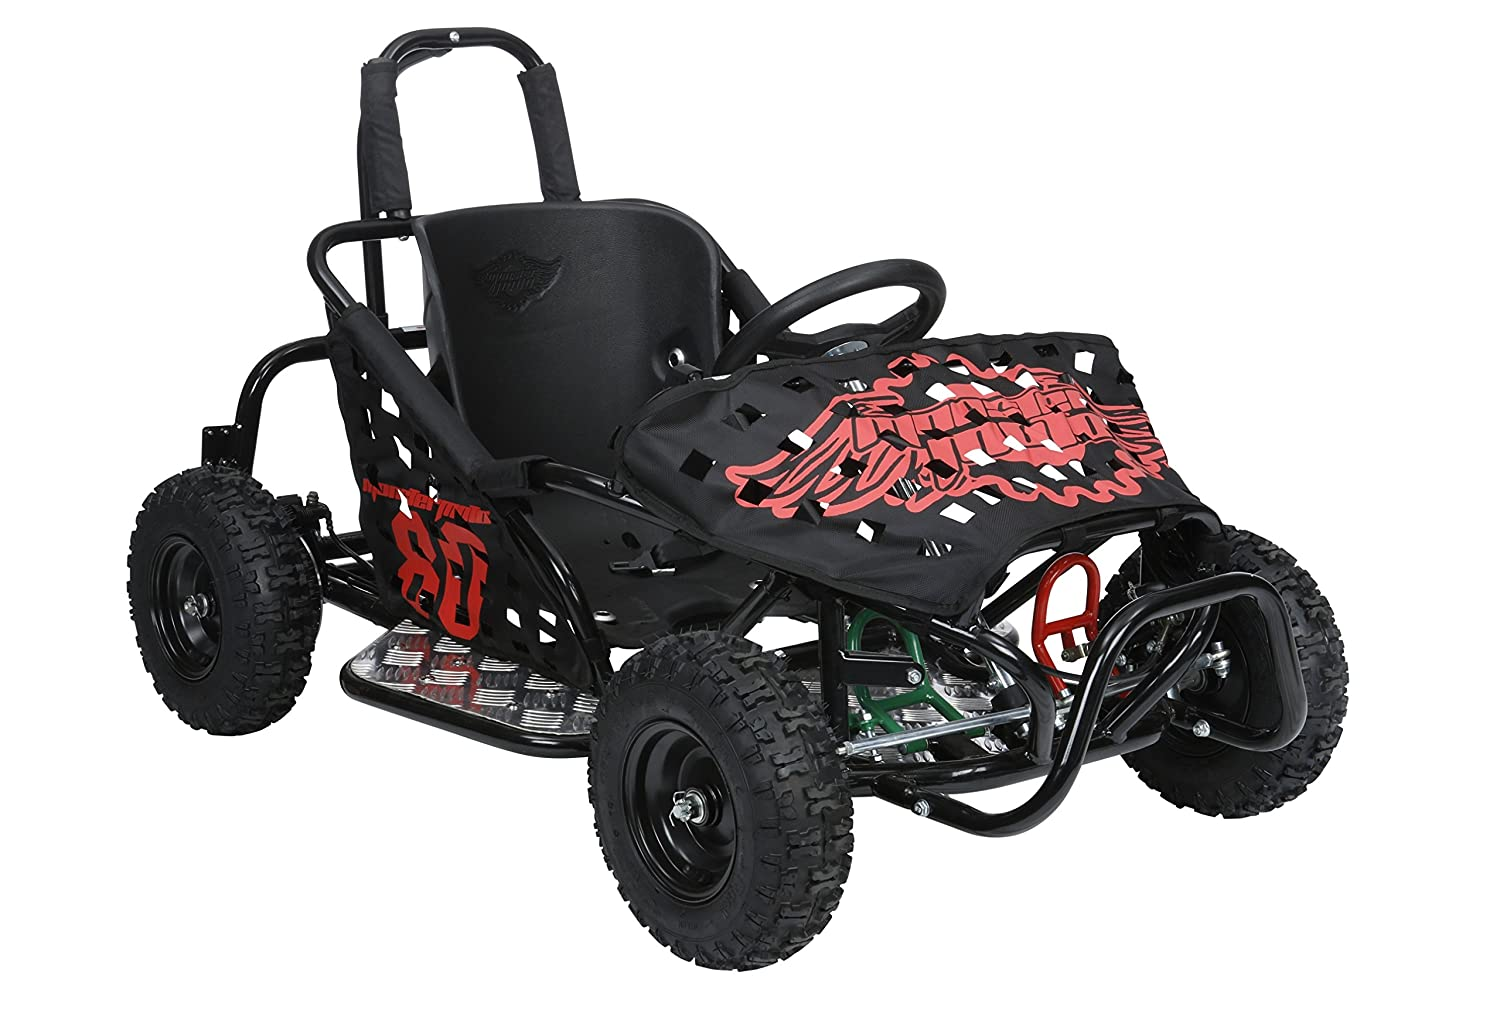 Amazon.com: Monster Moto MM-K80-BR Black Frame with Red Graphics Go ...